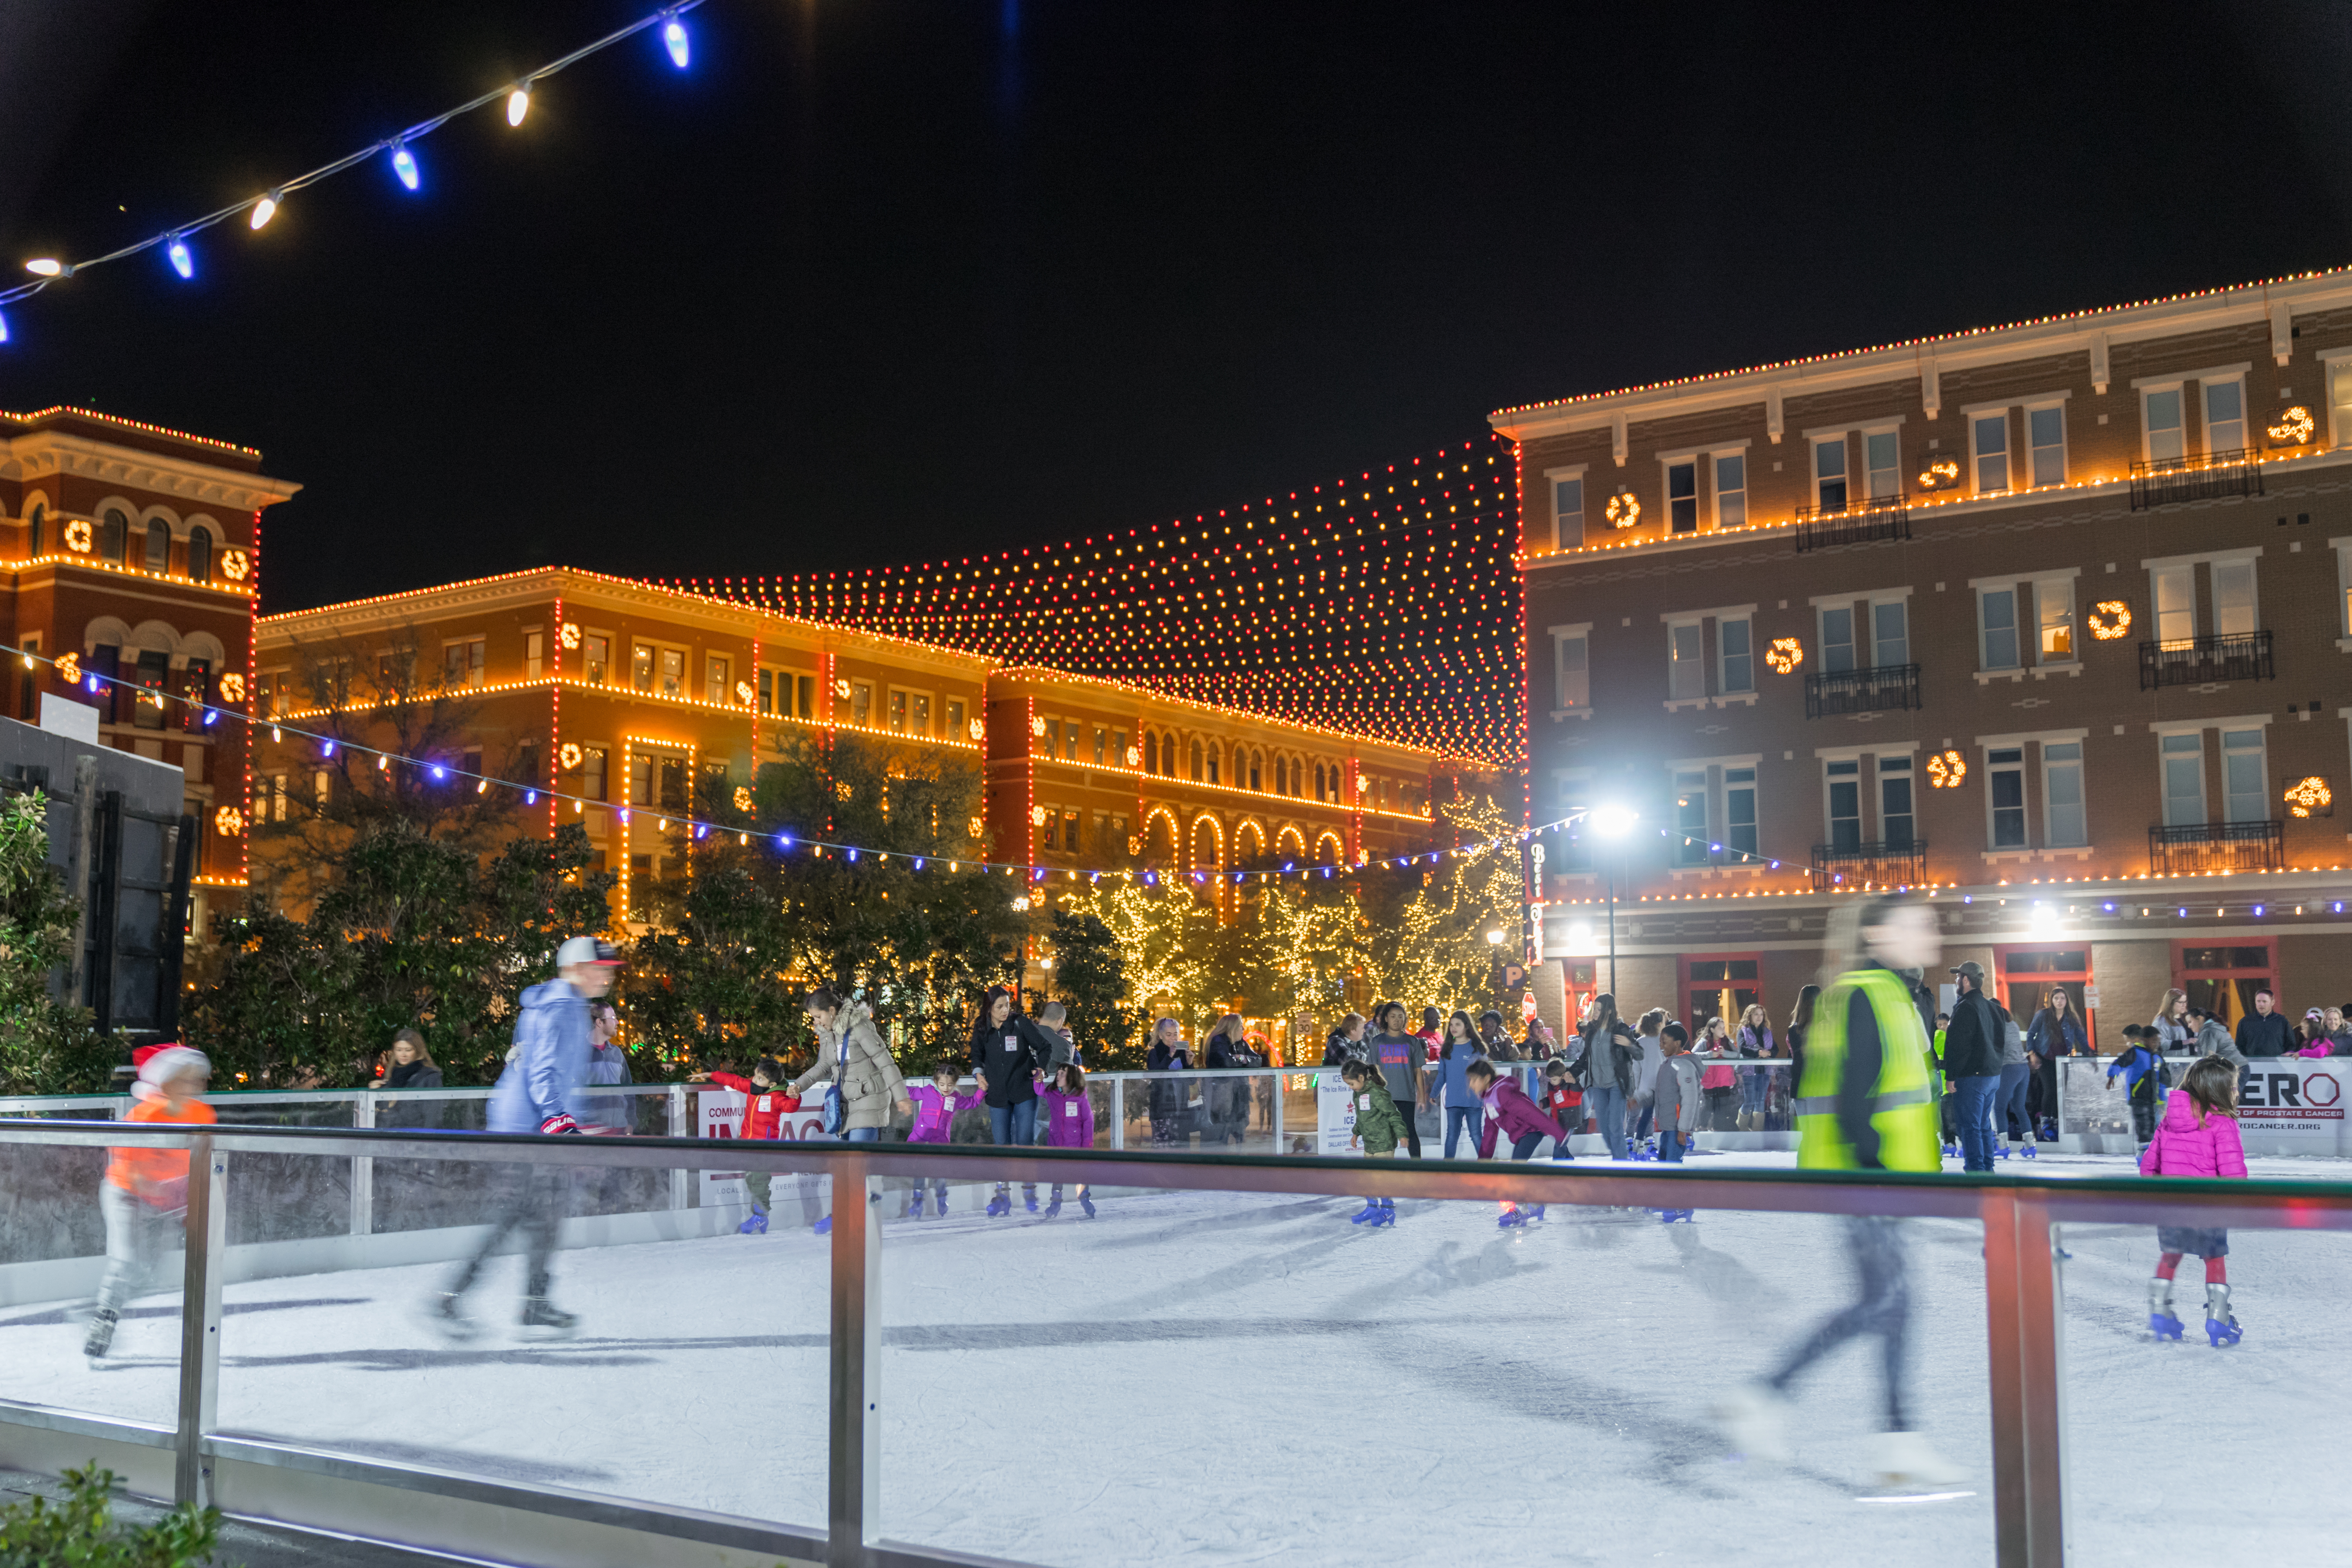 People participate in Christmas In The Square by skating on the skate rink.